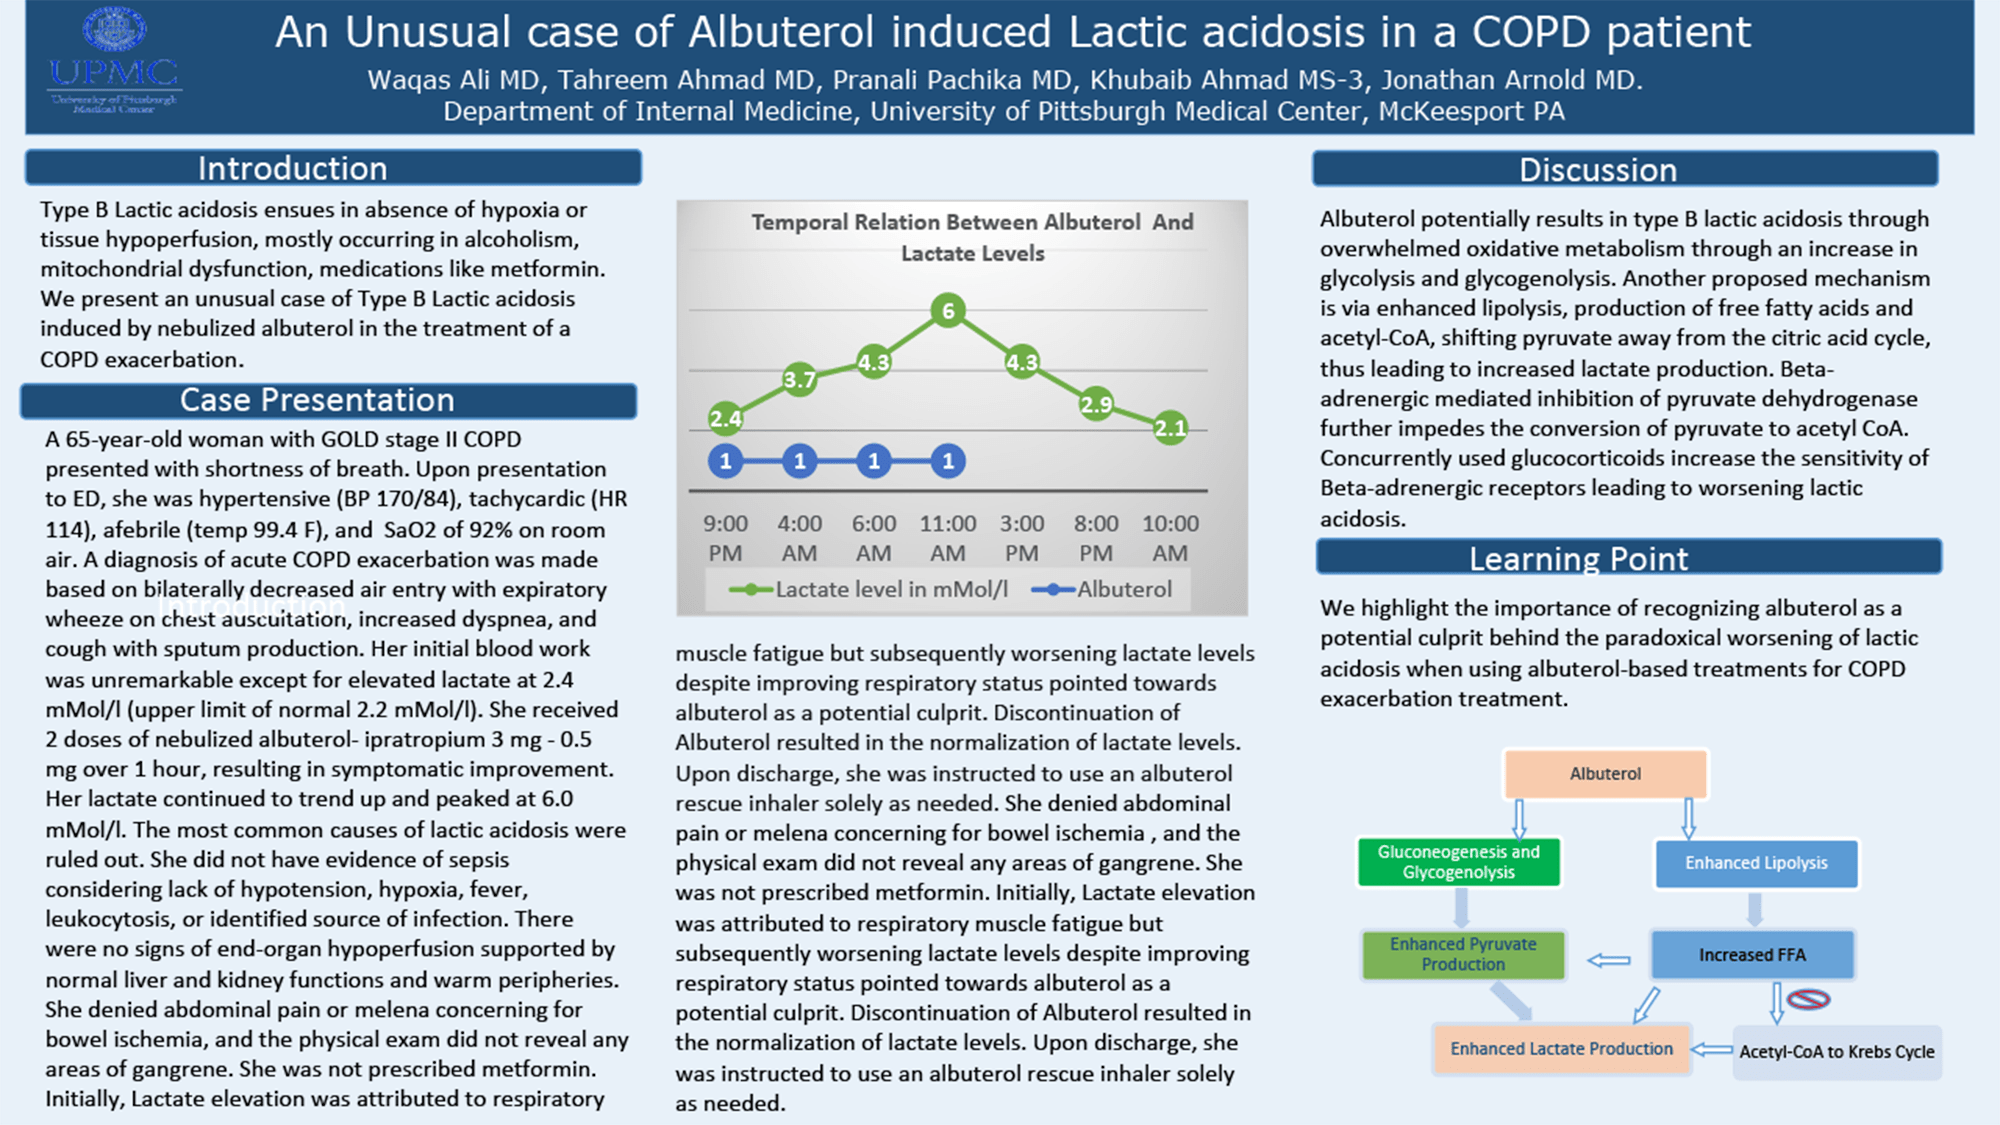 Waqas Ali - 2020-10-22 15.31.03 - PAW-74-An-Unusual-Case-Of-Albuterol-Induced-Lactic-Acidosis-In-A-COPD-Patient